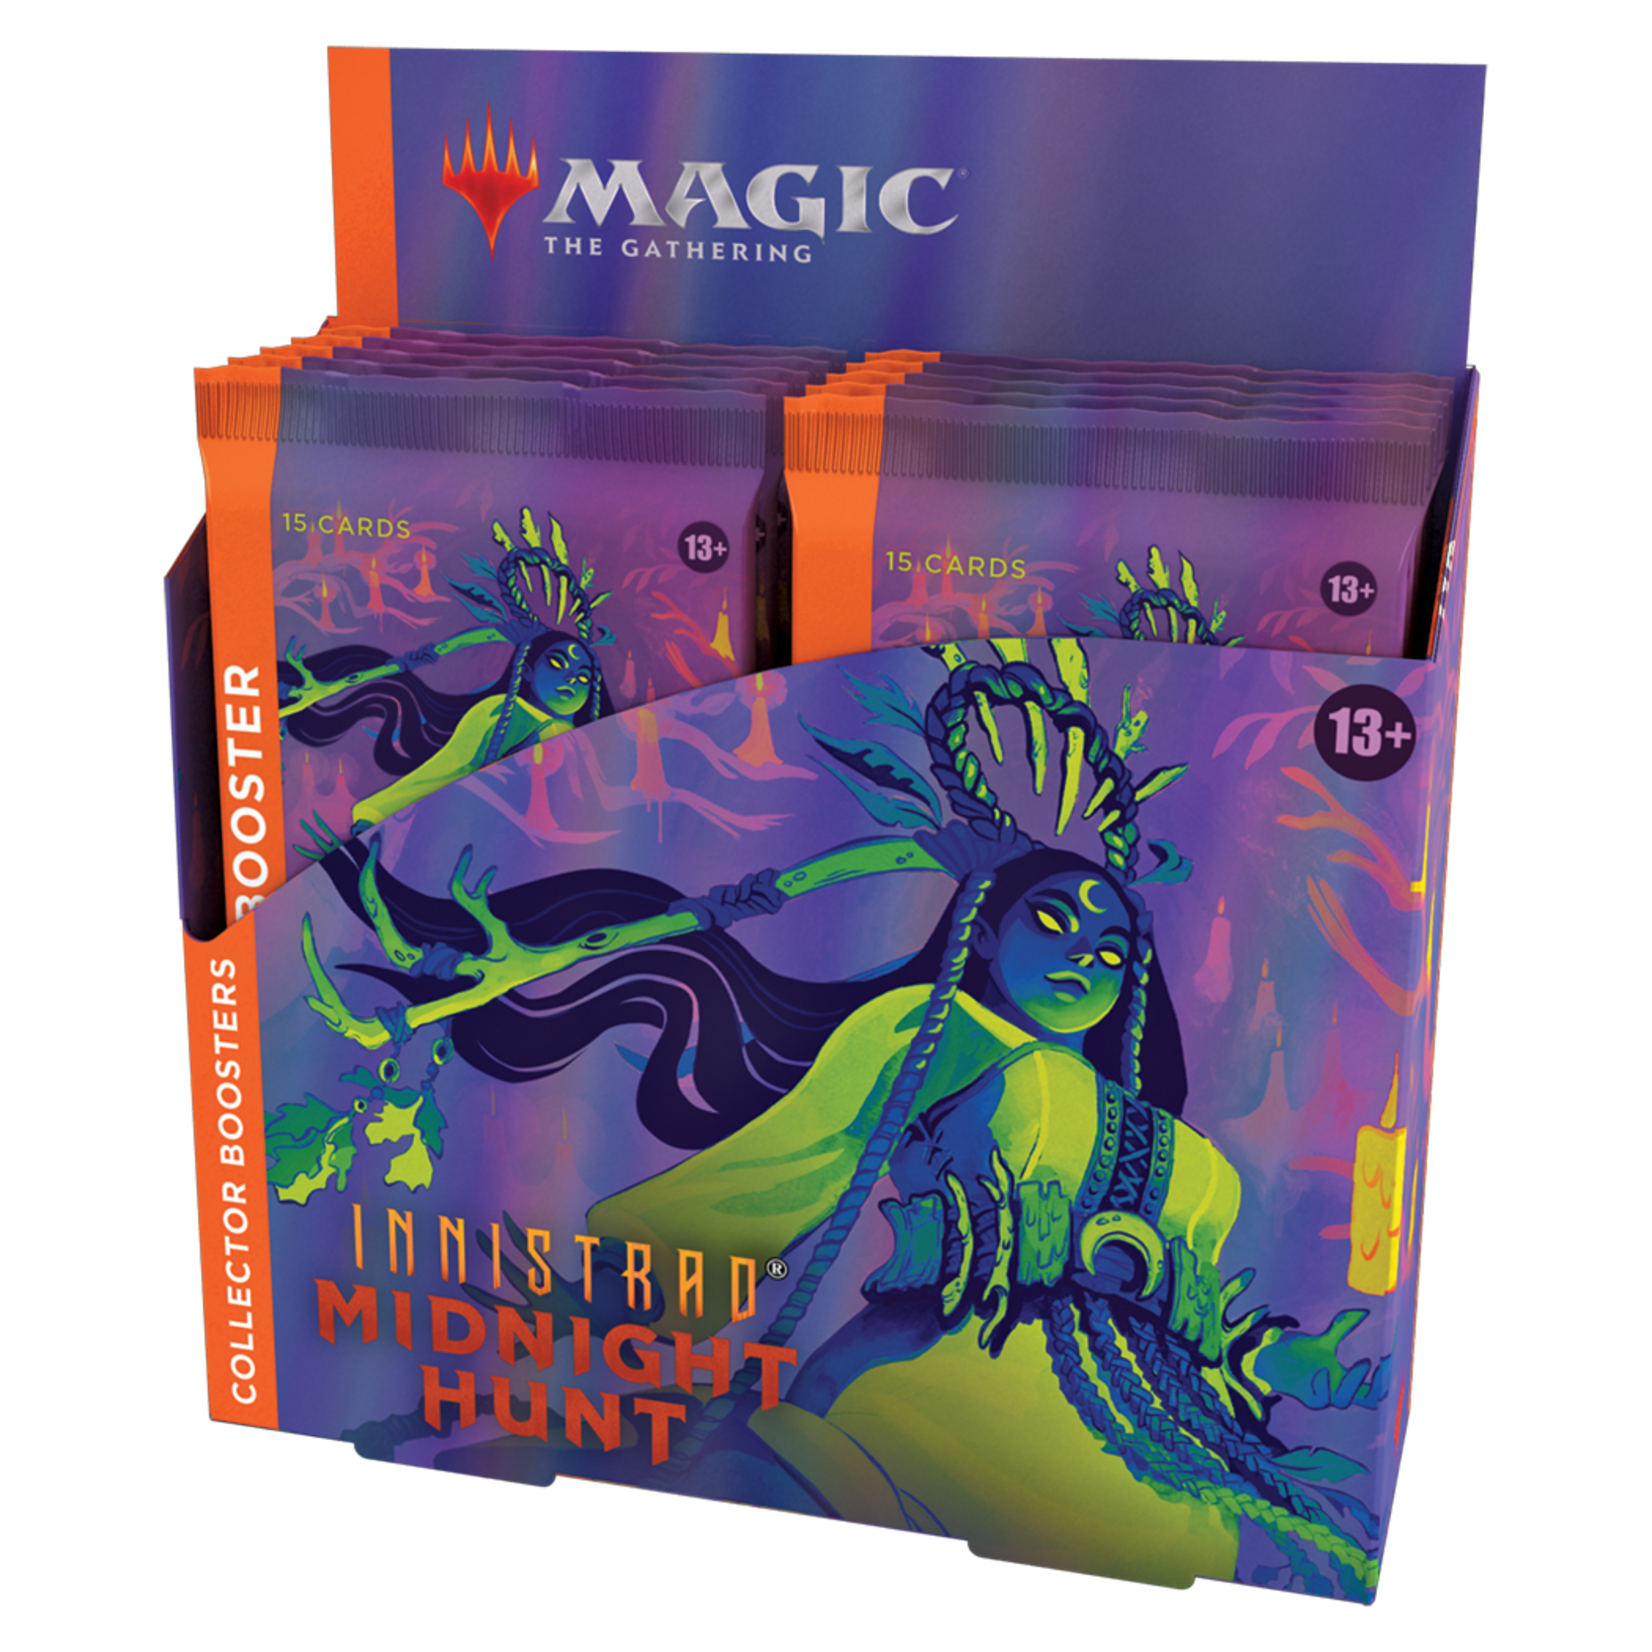 MAGIC THE GATHERING: INNISTRAD MIDNIGHT HUNT COLLECTOR BOOSTER BOX